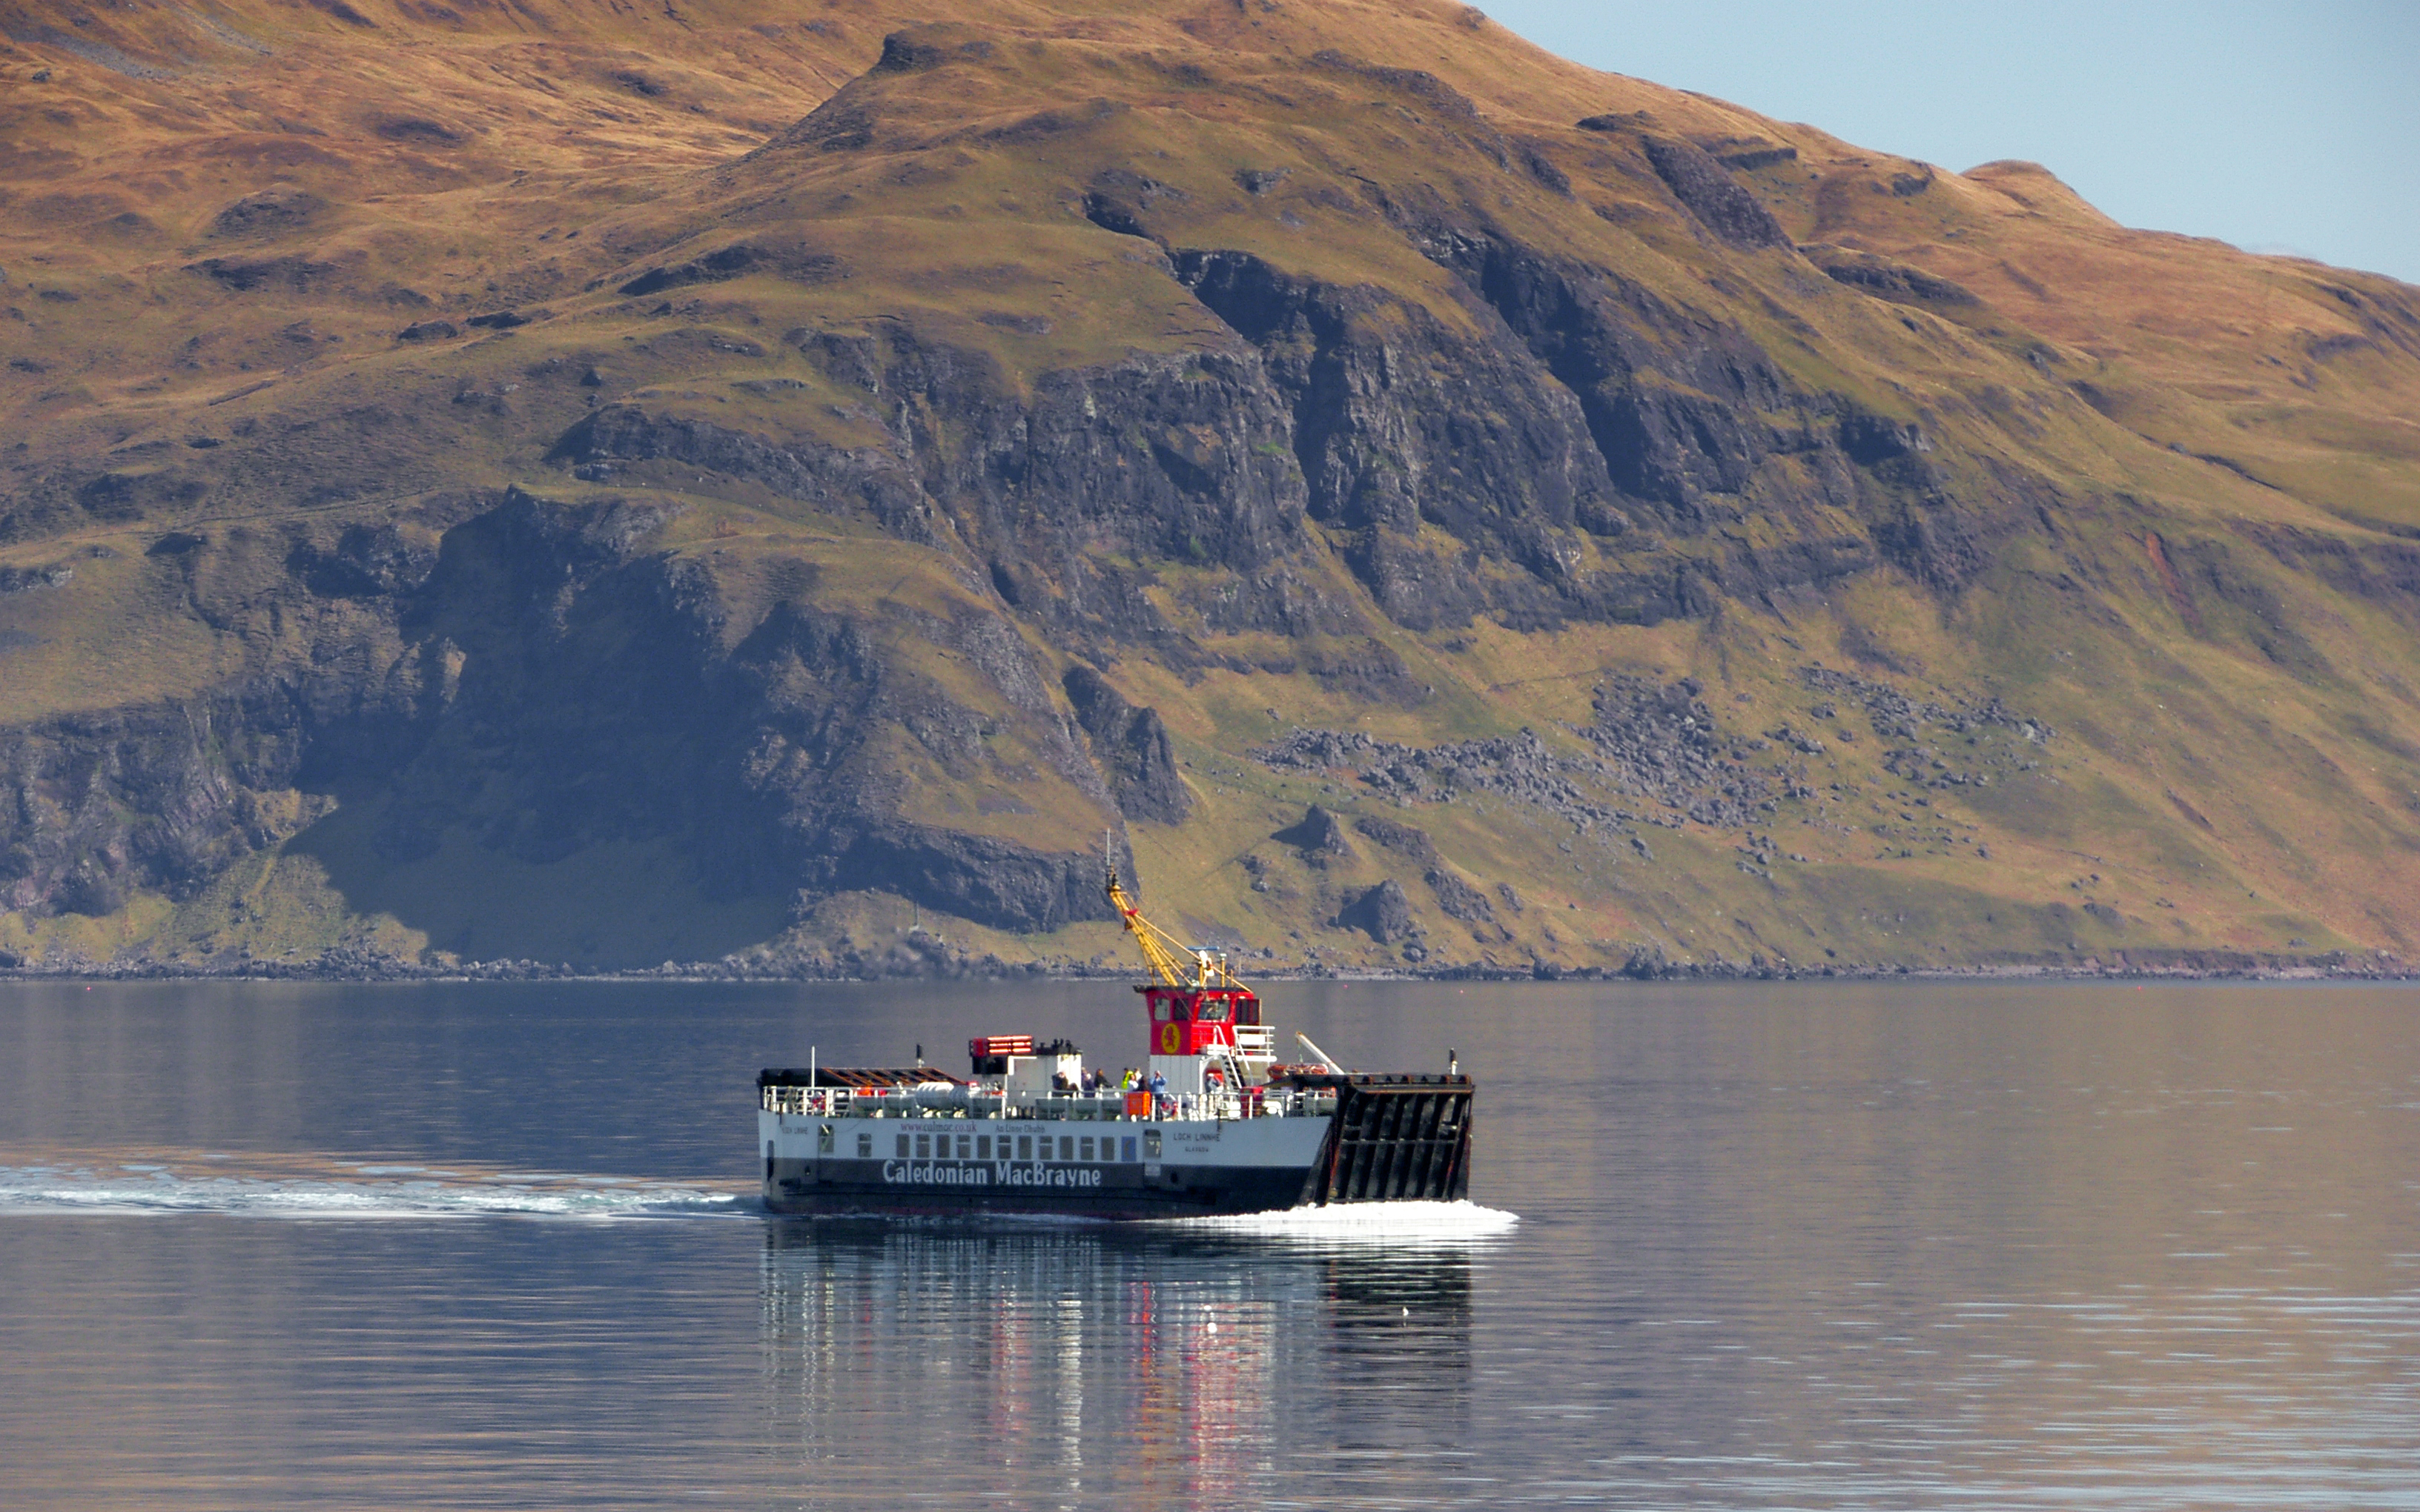 Loch Linnhe in the Sound of Mull (Ships of CalMac)